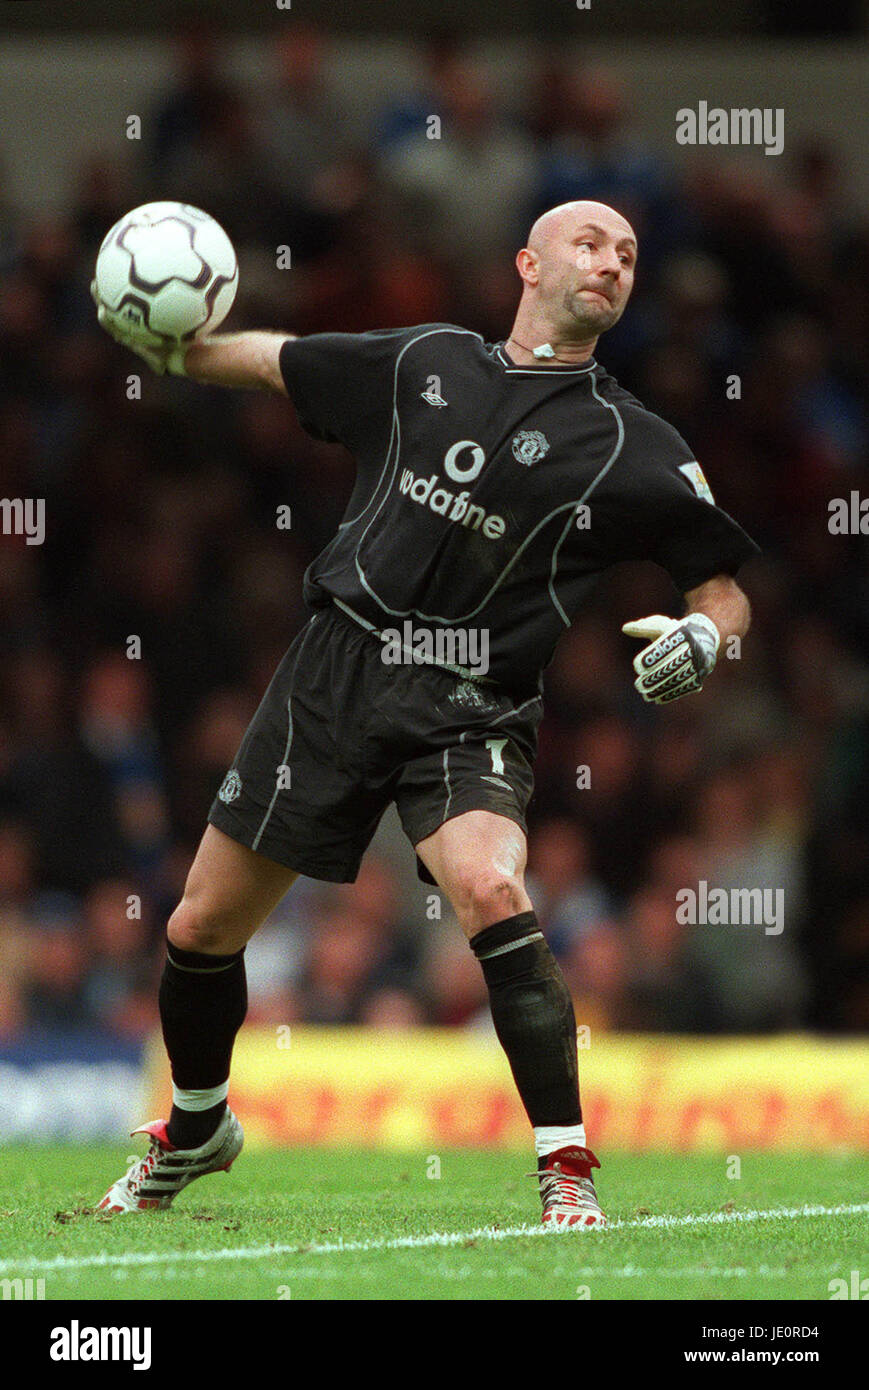 5c19cfc8c8a FABIEN BARTHEZ MANCHESTER UNITED FC FILBERT STREET LEICESTER ANGLETERRE 14  Octobre 2000 Photo Stock